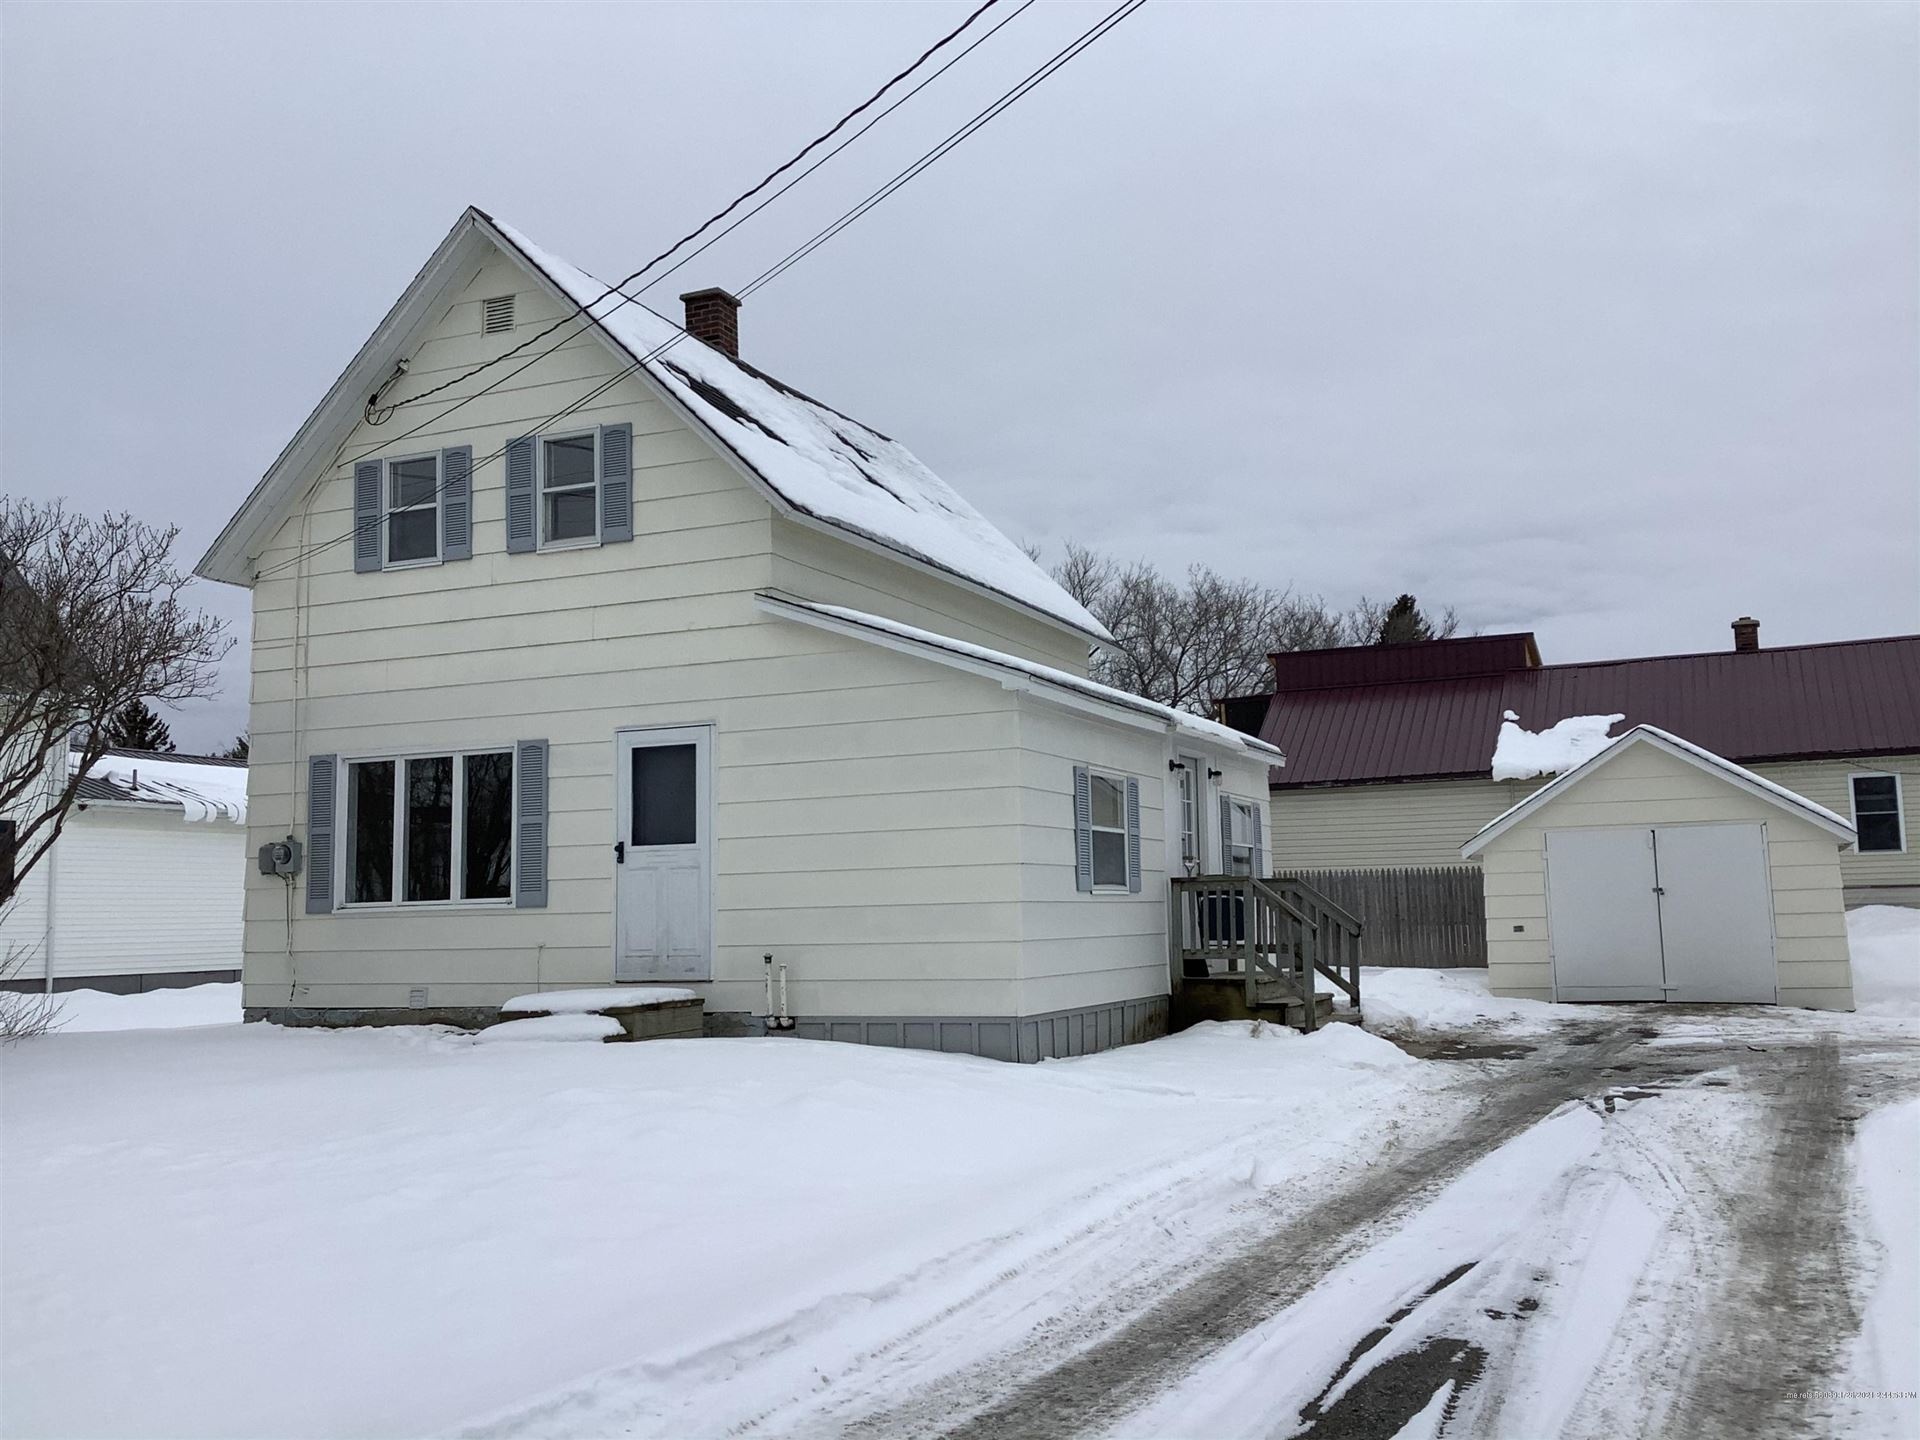 Photo of 169 Main Street, Fort Fairfield, ME 04742 (MLS # 1480603)